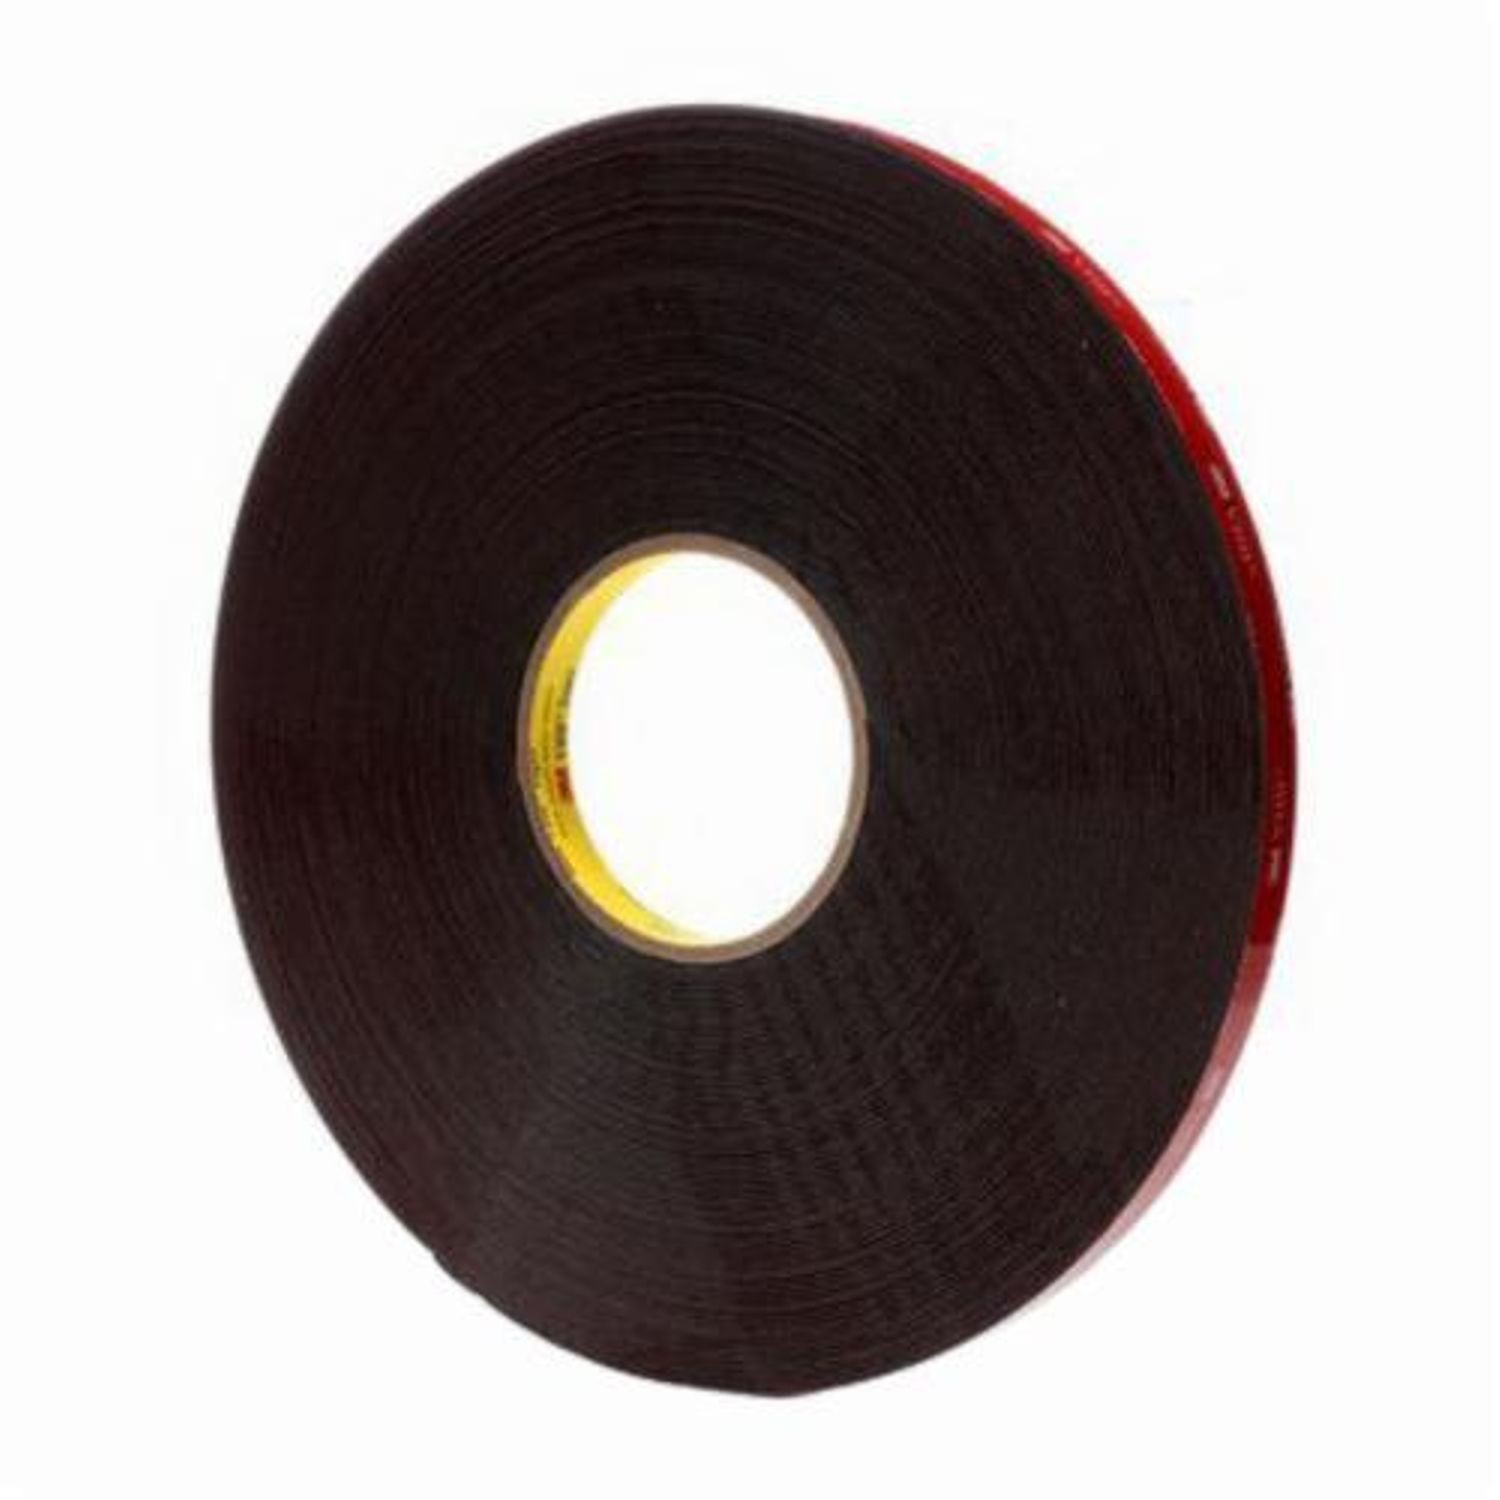 3m Vhb Tape Canada 3m Vhb 5952 High Strength Double Sided Bonding Tape 1 2 In W X 36 Yd Roll L 045 In Thk Black